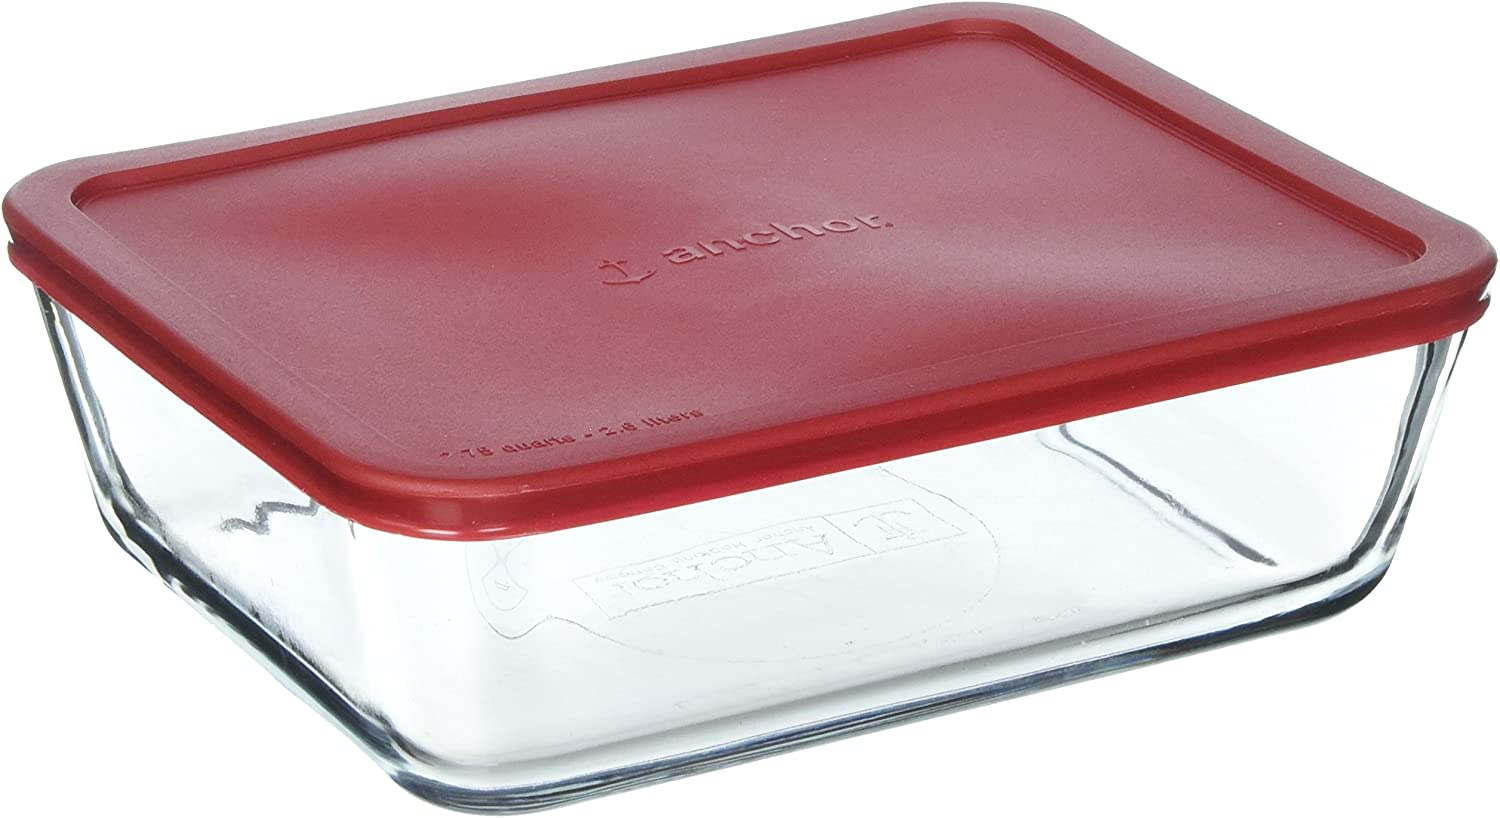 Anchor Hocking Classic Glass Food Storage Container with Lid, Red, 11 Cup, Clear, Regular - 77931